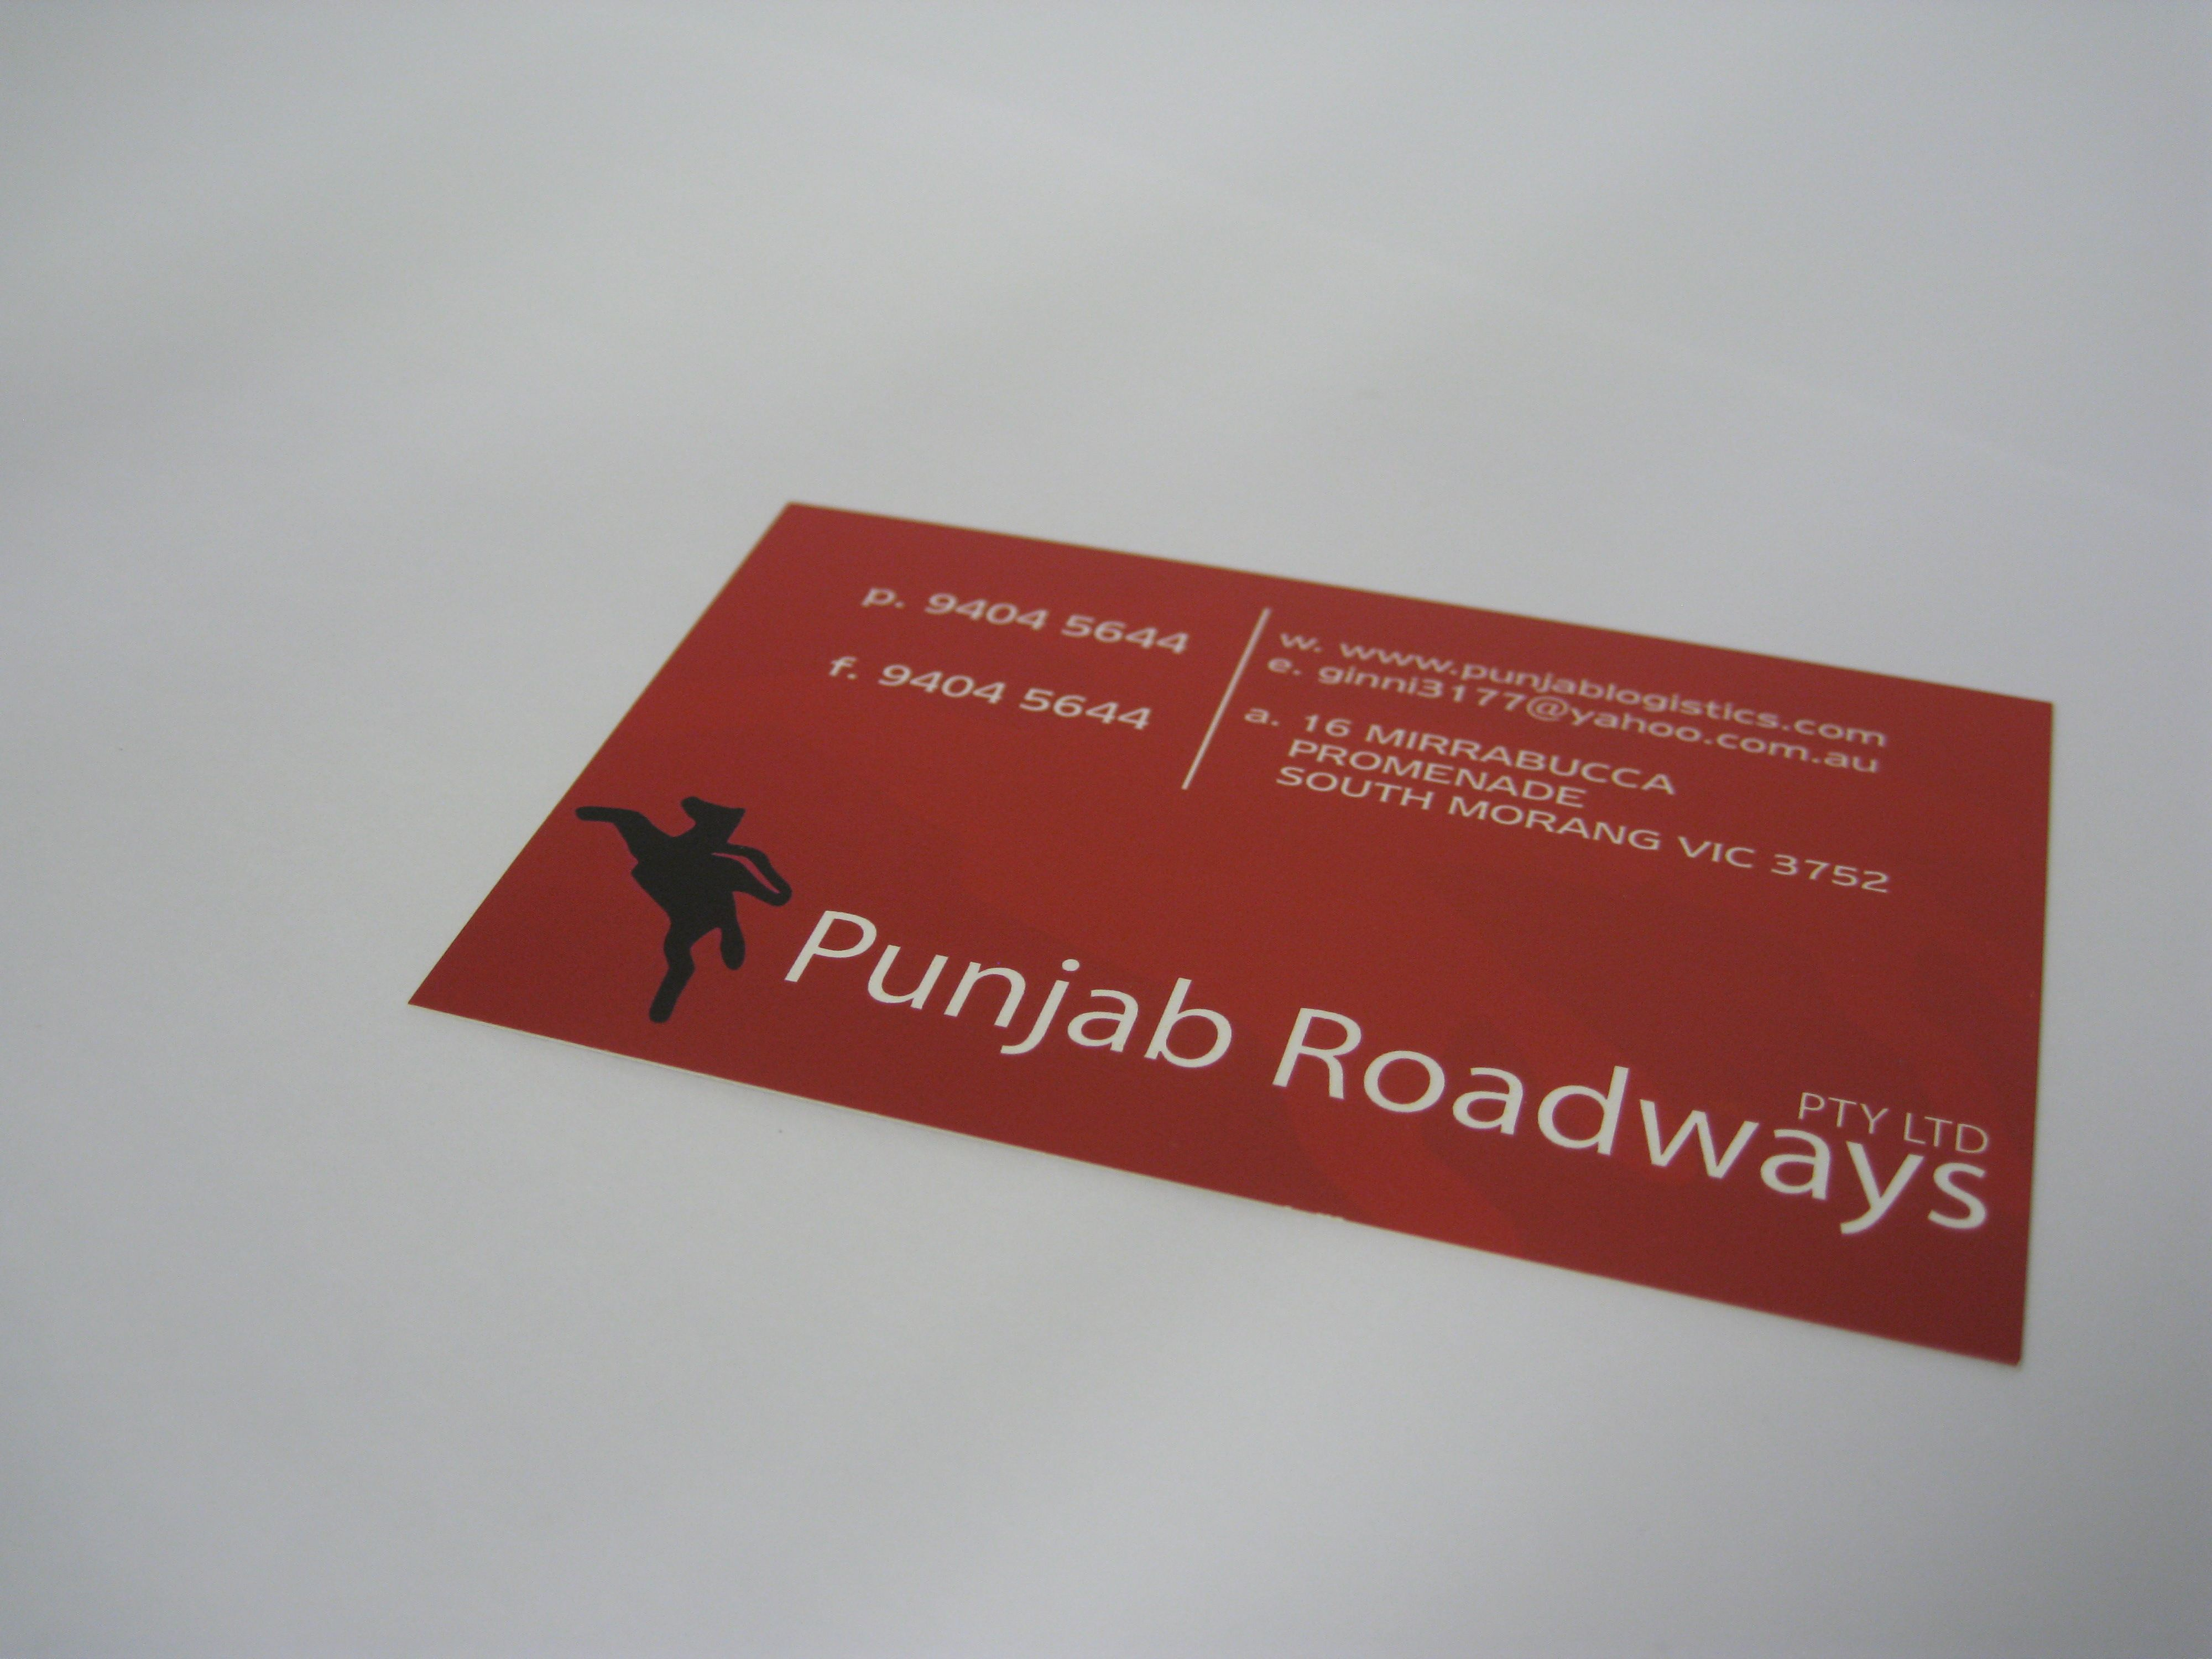 Business Cards Designed And Printed For Punjab Roadways Thank You Business Card Inspiration Printed Cards Business Card Design